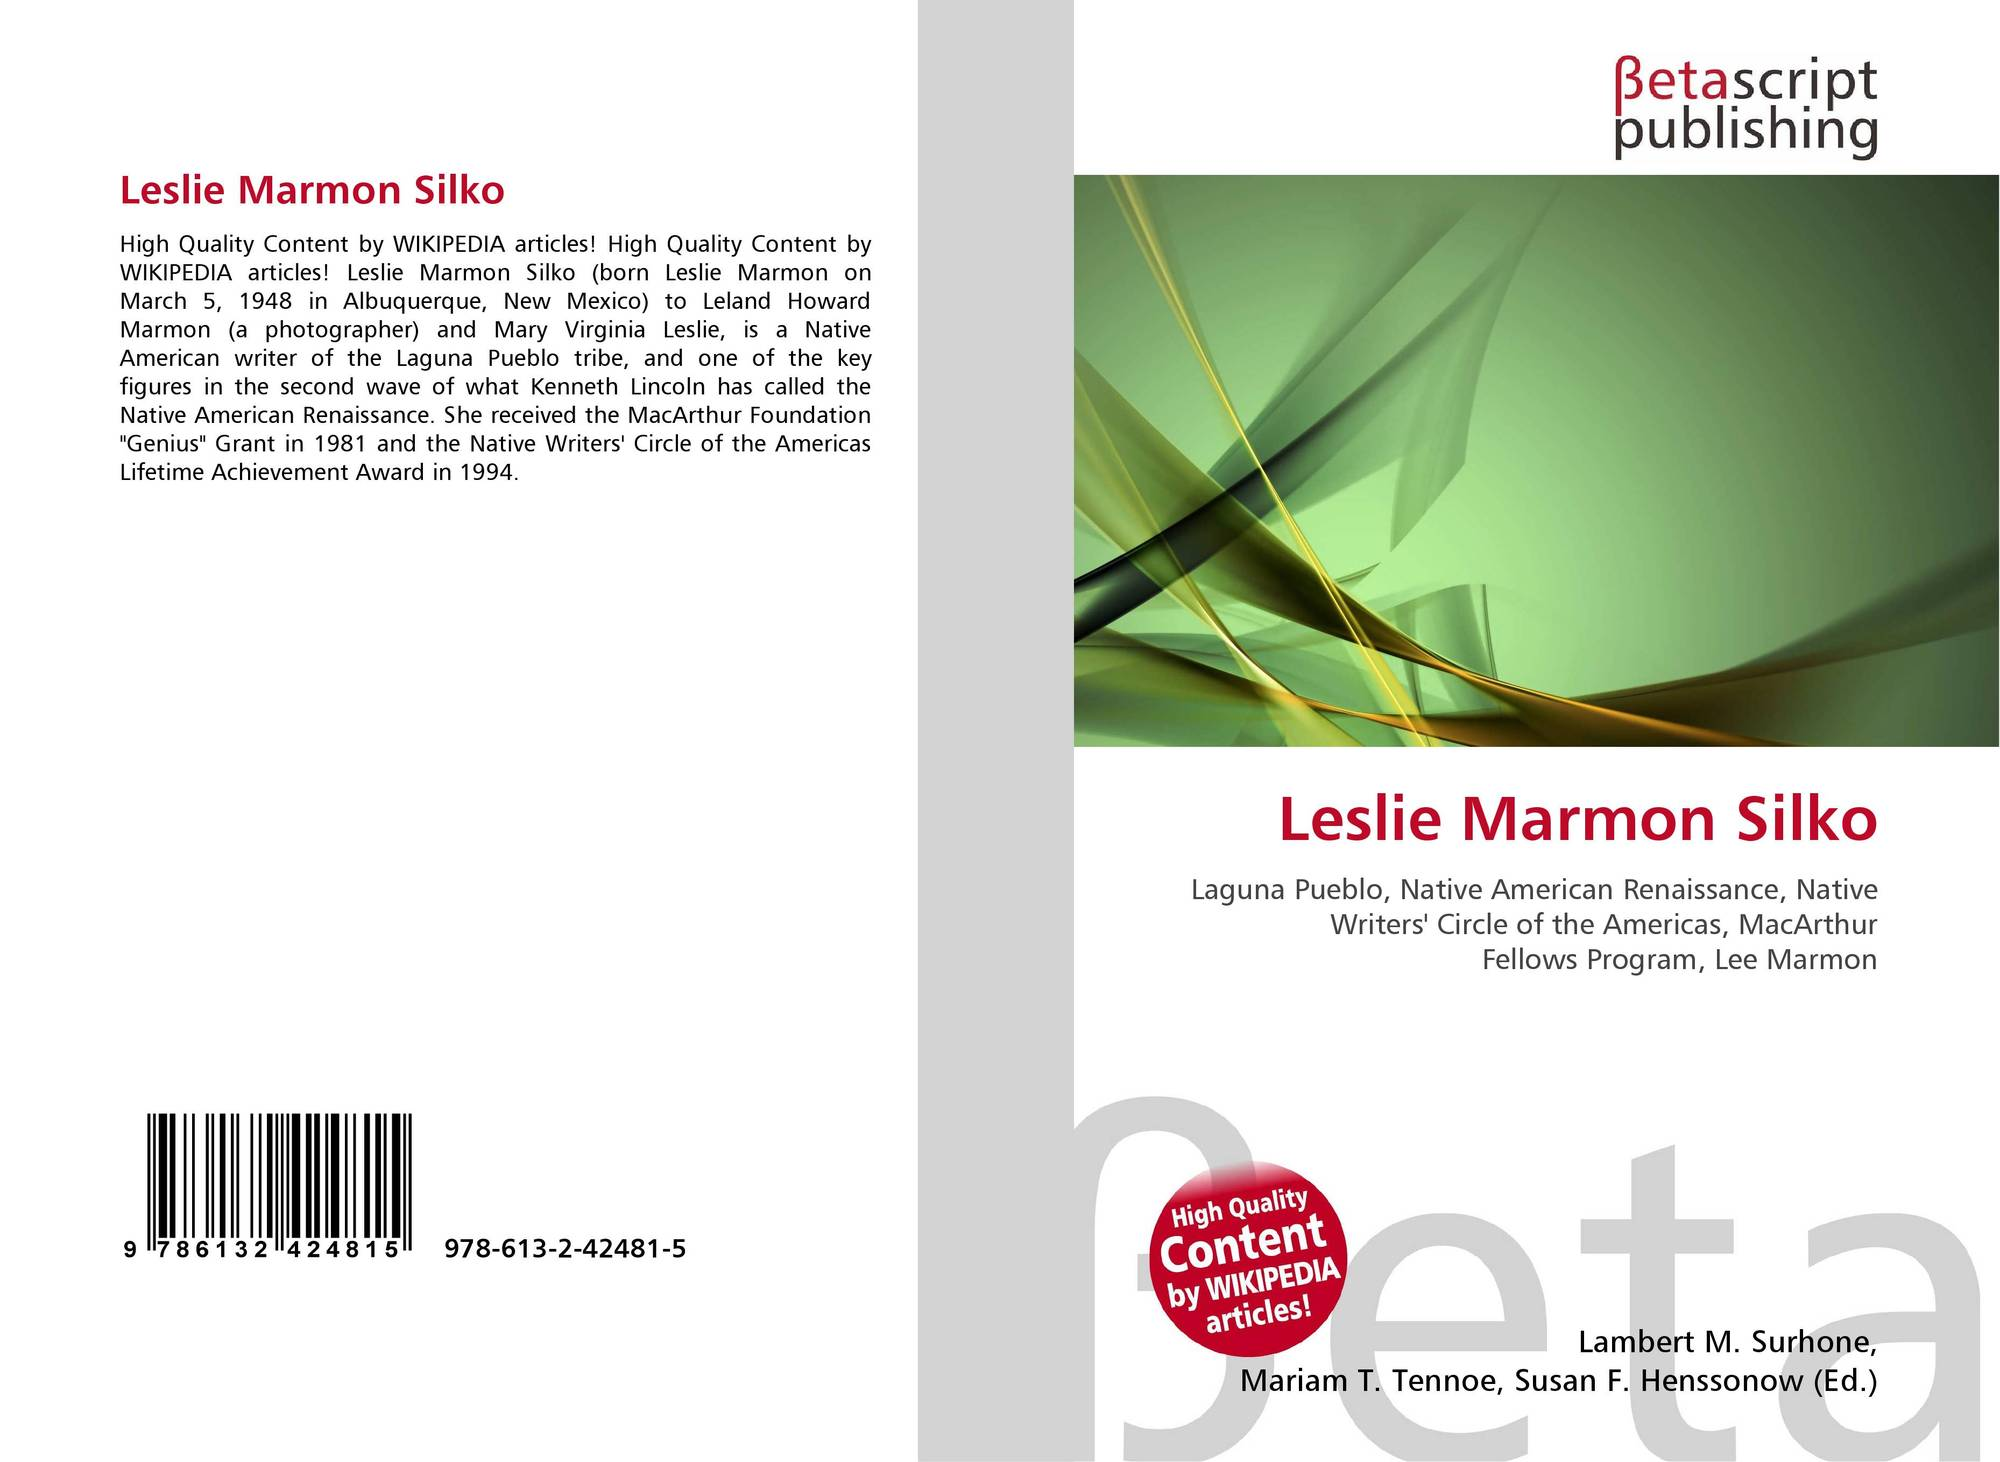 an analysis of leslie marmon silkos works